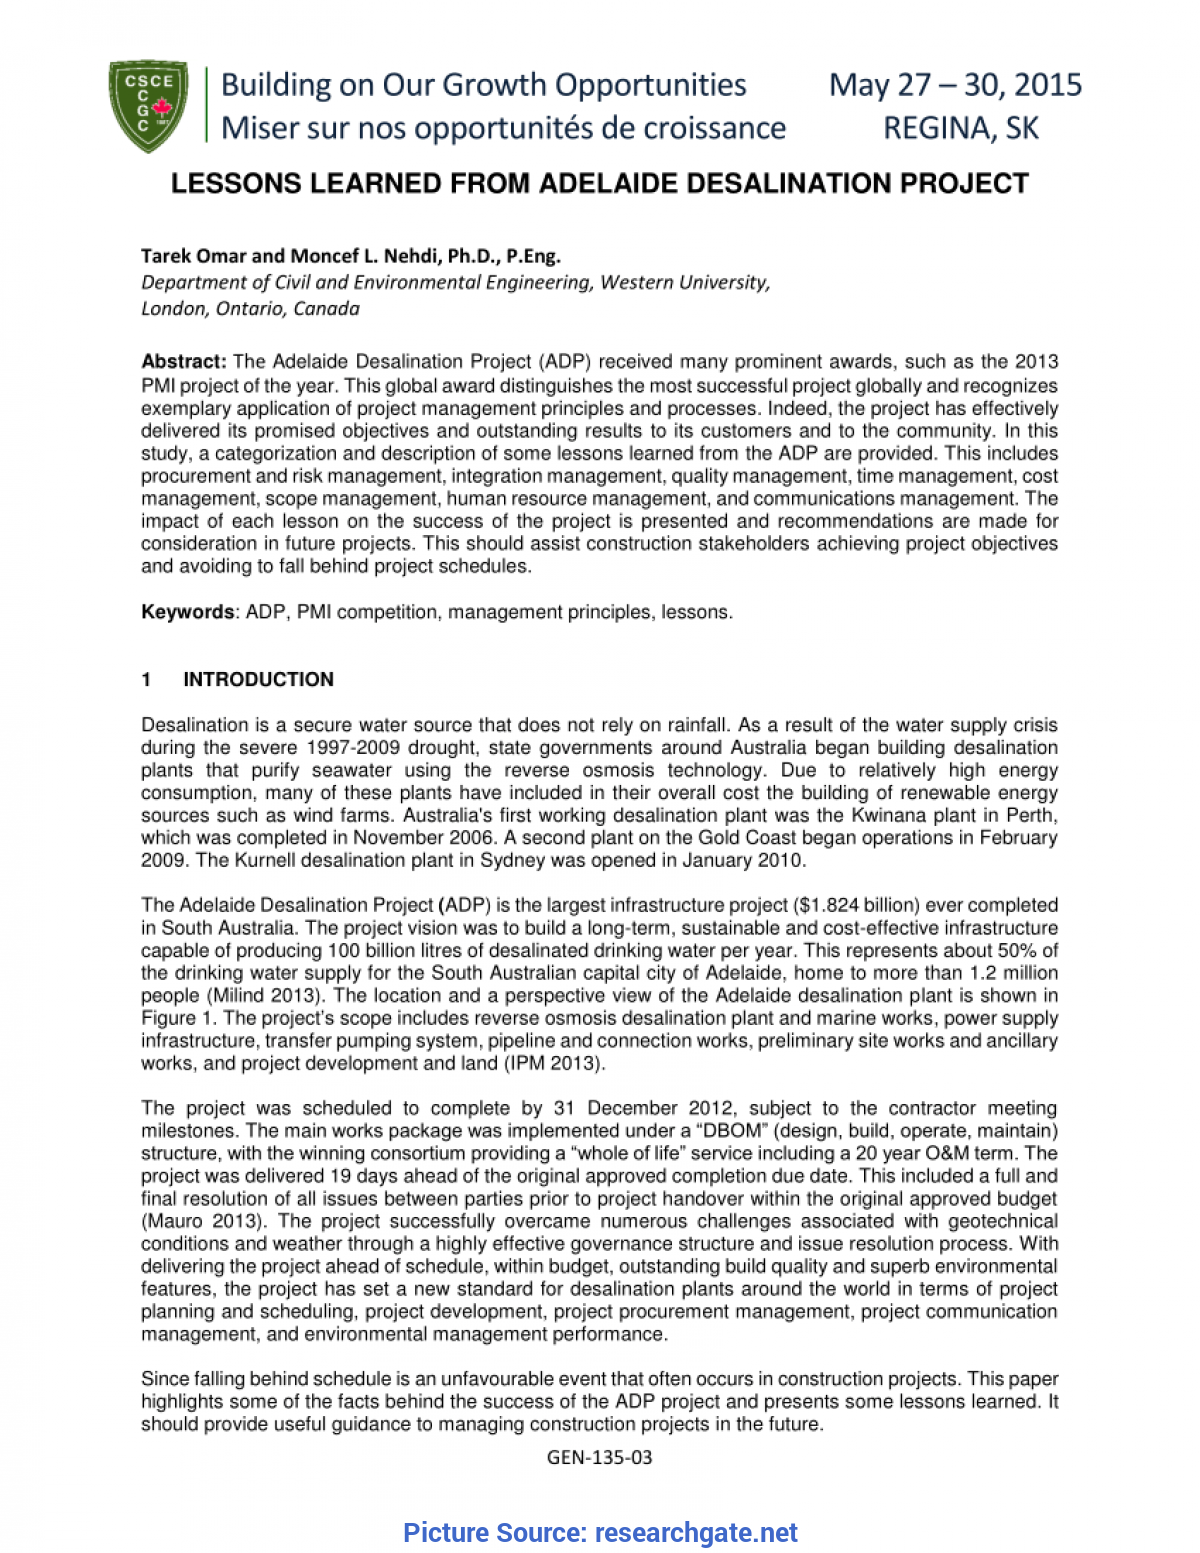 Good Lessons Learned In Construction Project Management Lessons Learned From Adelaide Desalination Project (Pdf Downloa